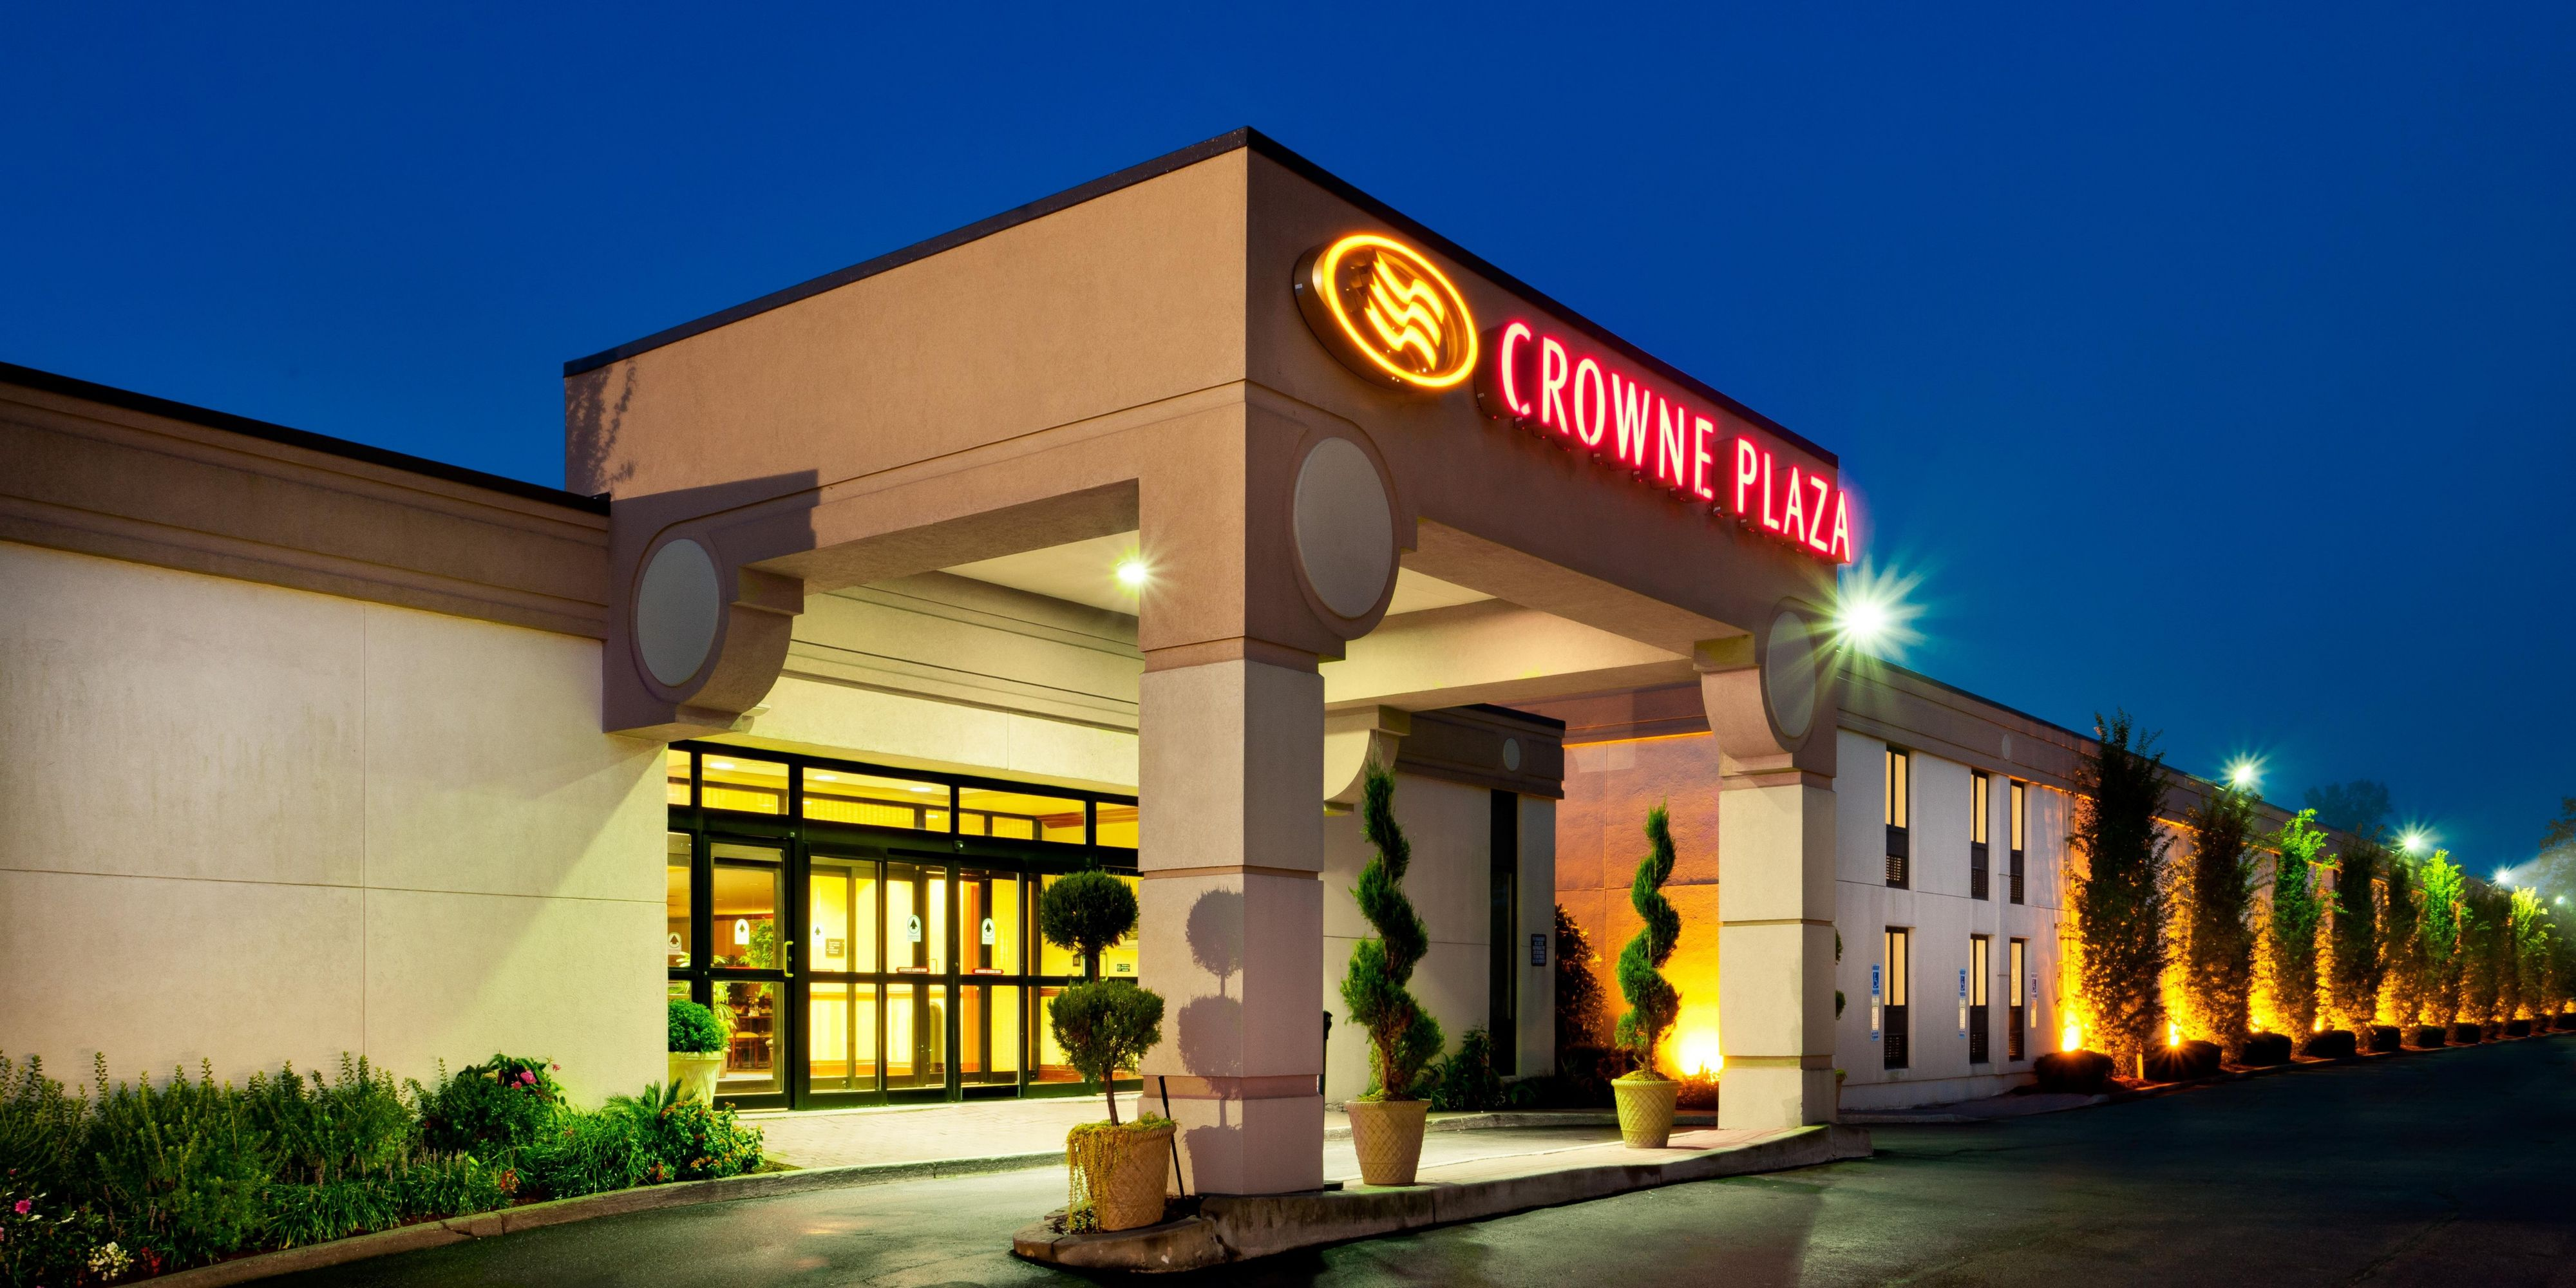 Crowne Plaza  Paramus  The Meadowlands Liberty. ASI Lodge Tirol Hotel. Holiday Inn Sanya Bay Resort. Worrowing Jervis Bay Eco Resort. Hotel Visconteo. Queensberry House Guest Accommodation. The City Rooms Hotel. Scandic Plaza Hotel. Holiday Inn Zilina Hotel